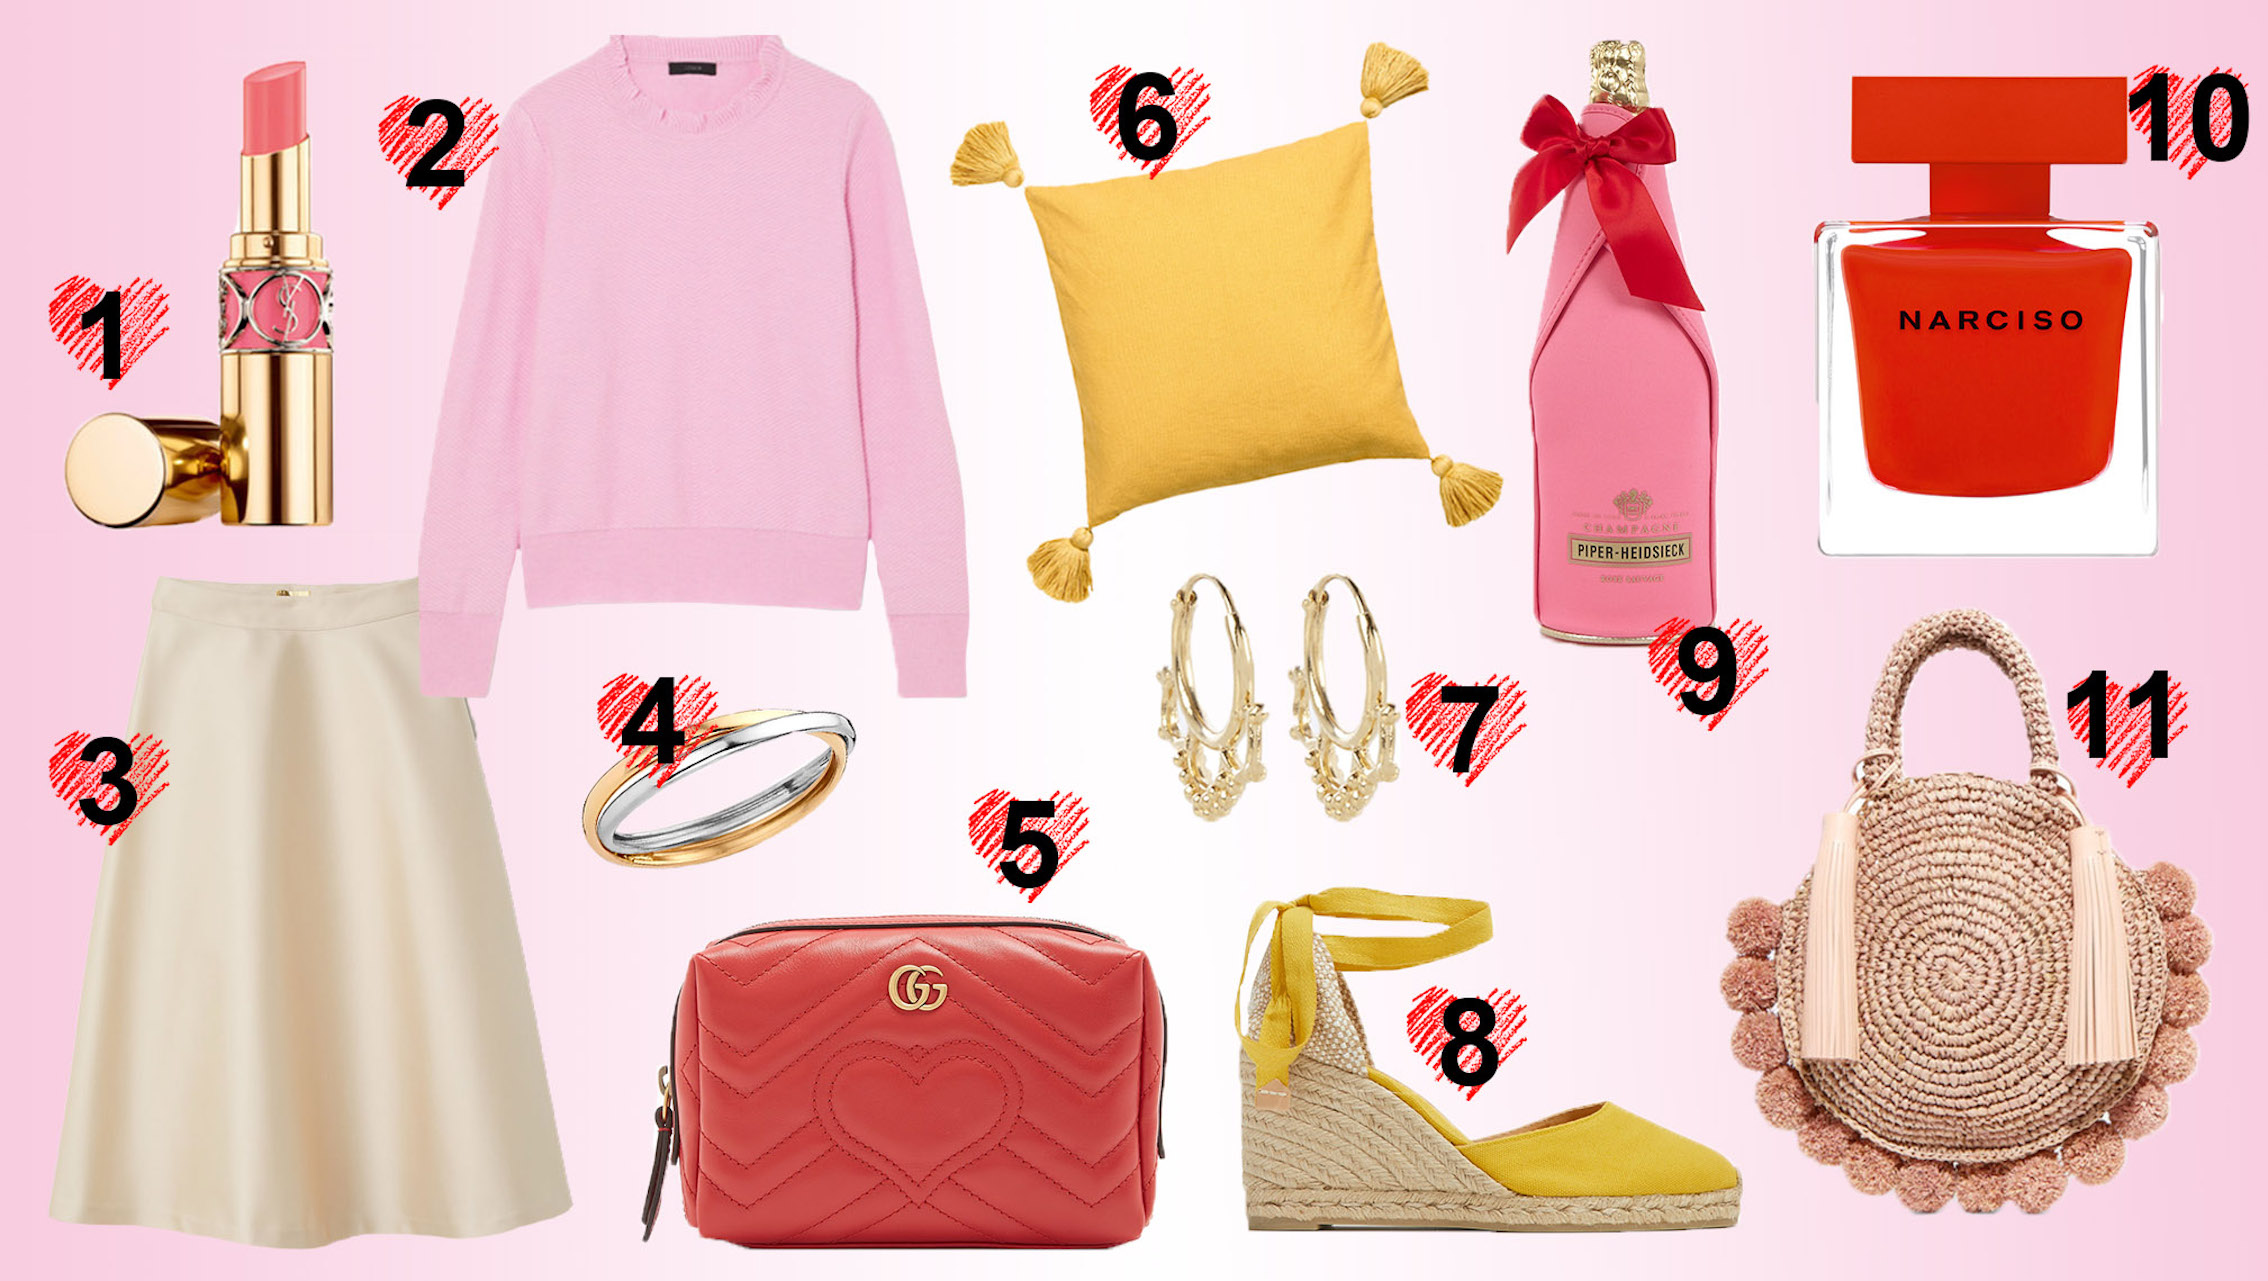 LAST CALL: MOTHER'S DAY GIFT GUIDE